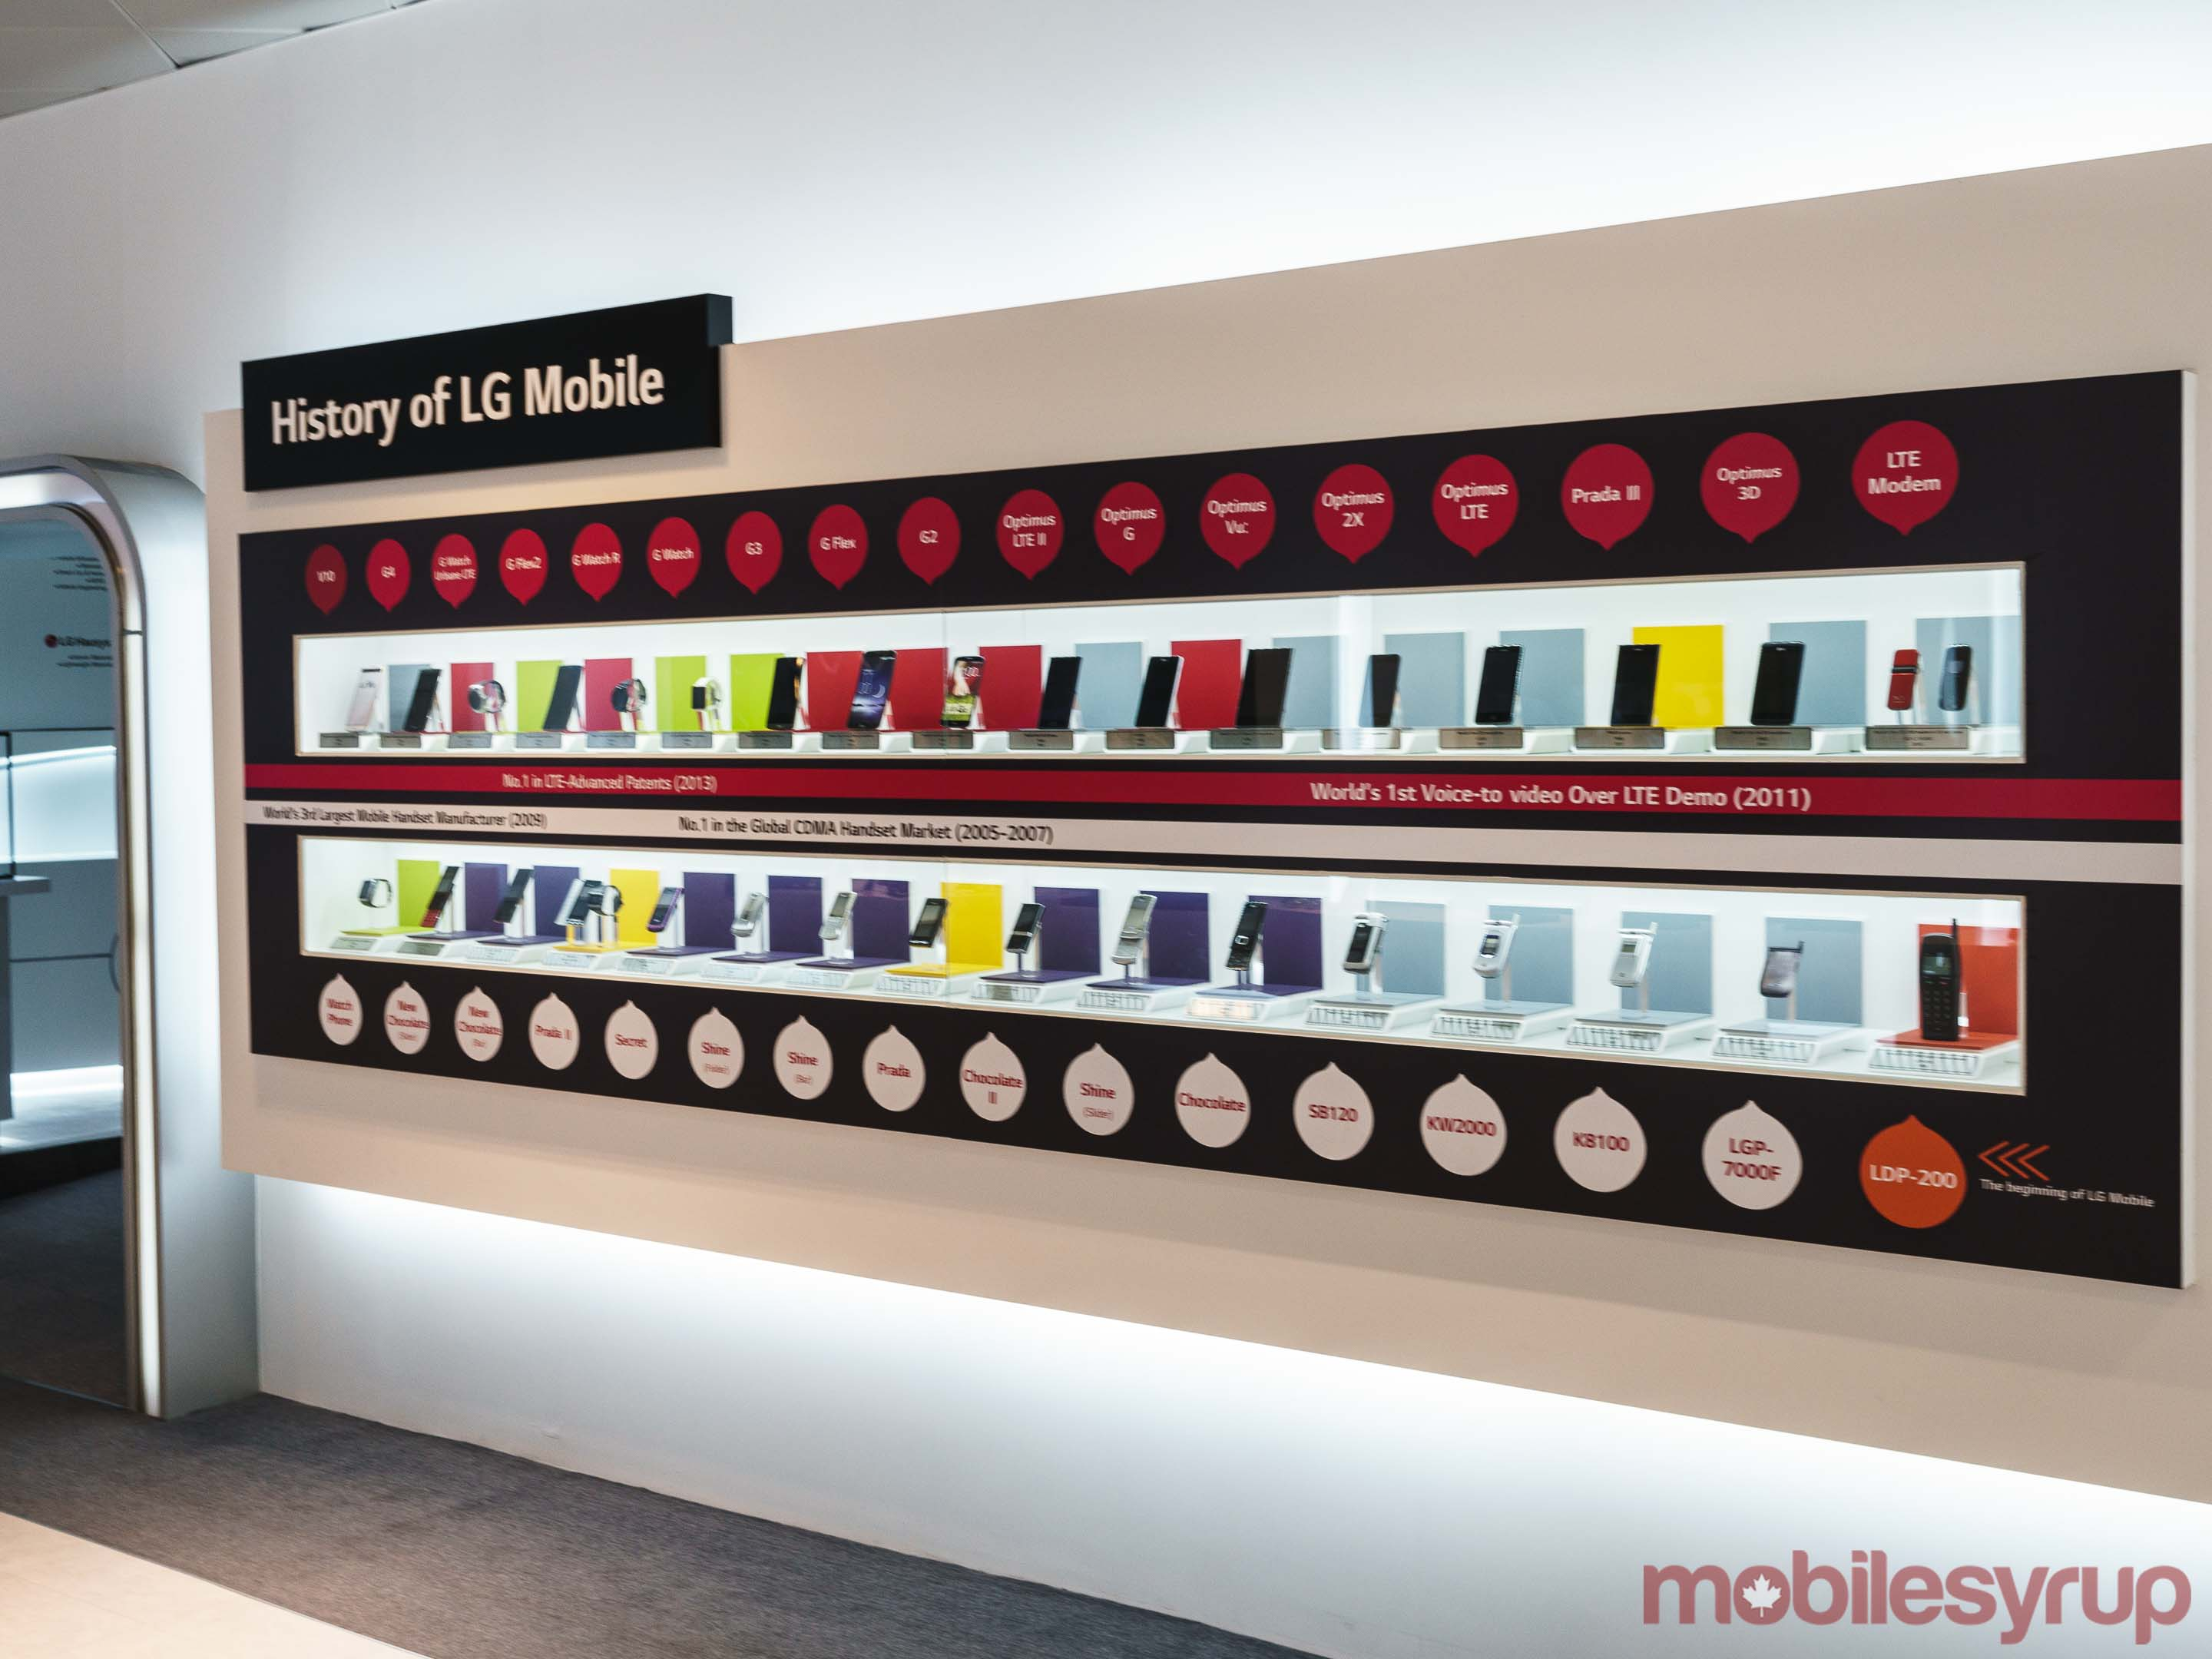 LG's wall of mobile history